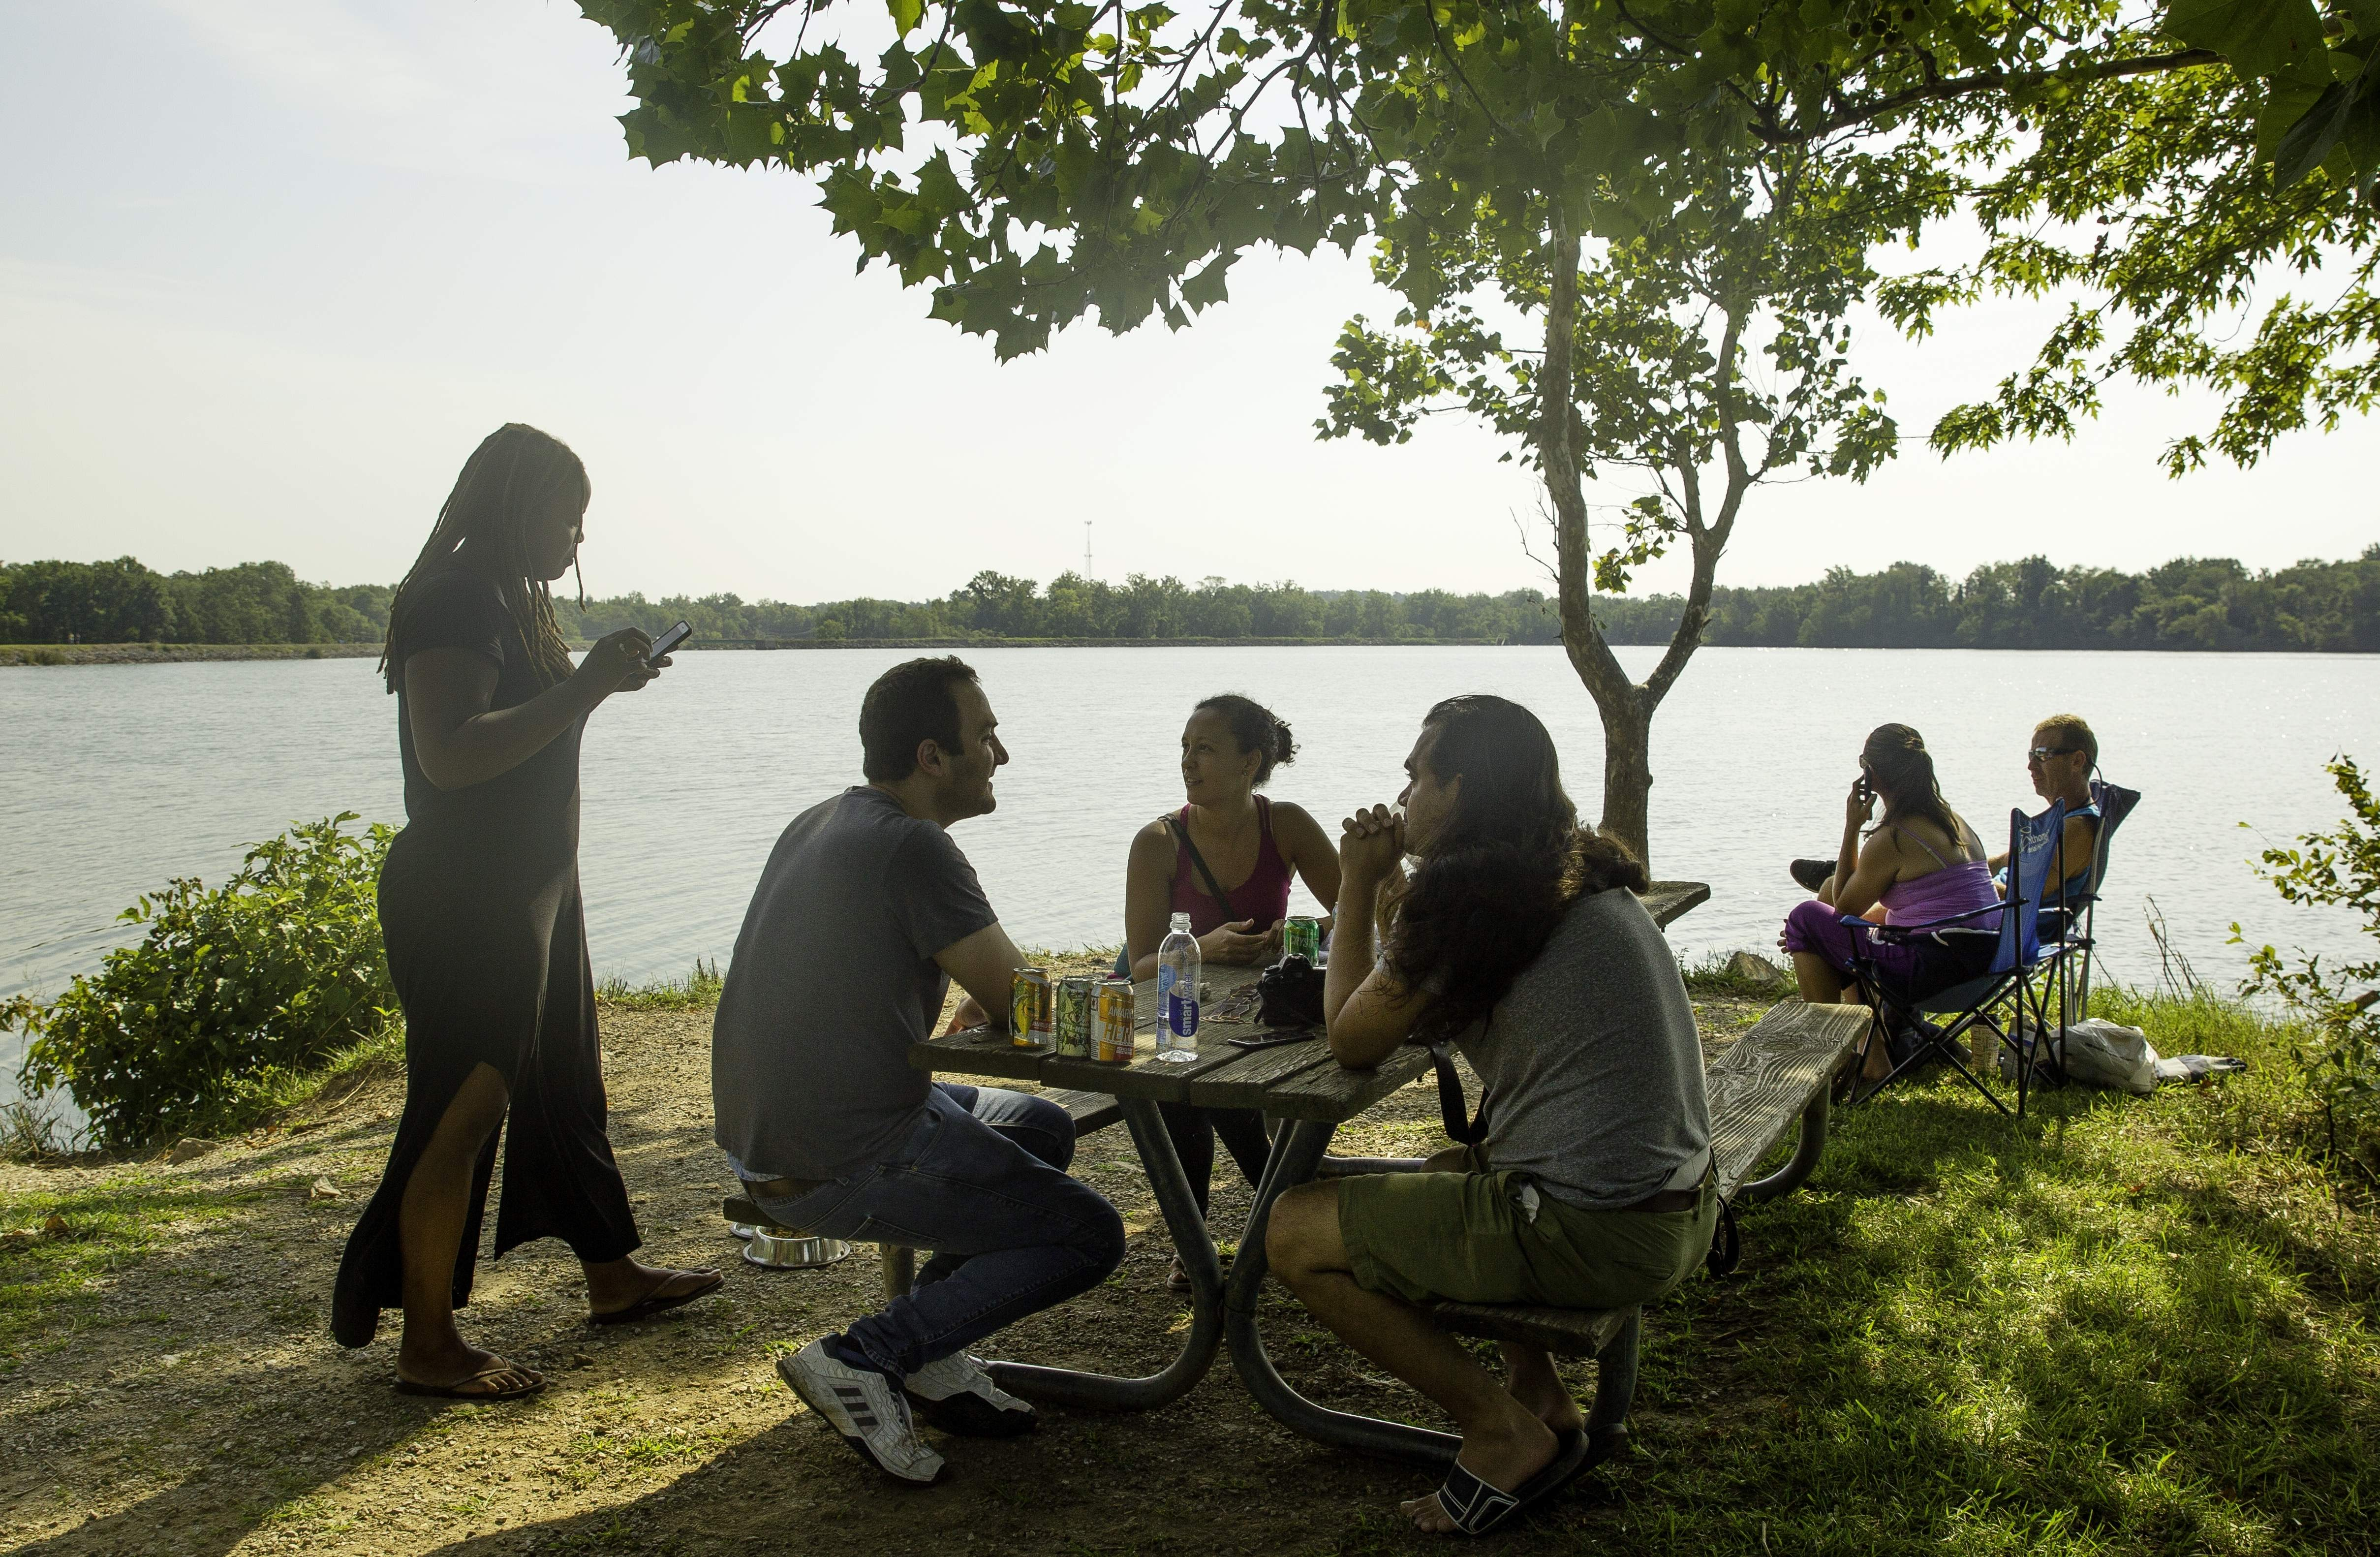 Former college roomates Alex Marson, left, and Cassim Shepard, along with Shepard's wife Heather McGhee, left, and her sister Shannon McGhee visit on a tiny pennisula of land that stretches into the Carbondale Reservoir as they wait for the total solar eclipse Monday, Aug. 21, 2017. Shepard said he's been waiting to view the eclipse since he saw a commercial for the Mitsubishi Eclipse as a nine-year-old that advertised the 2017 event. 'I thought the future would be here,' Shepard said, who also thought we'd be traveling in solar-powered vehicles to the moon. [Ted Schurter/The State Journal-Register]